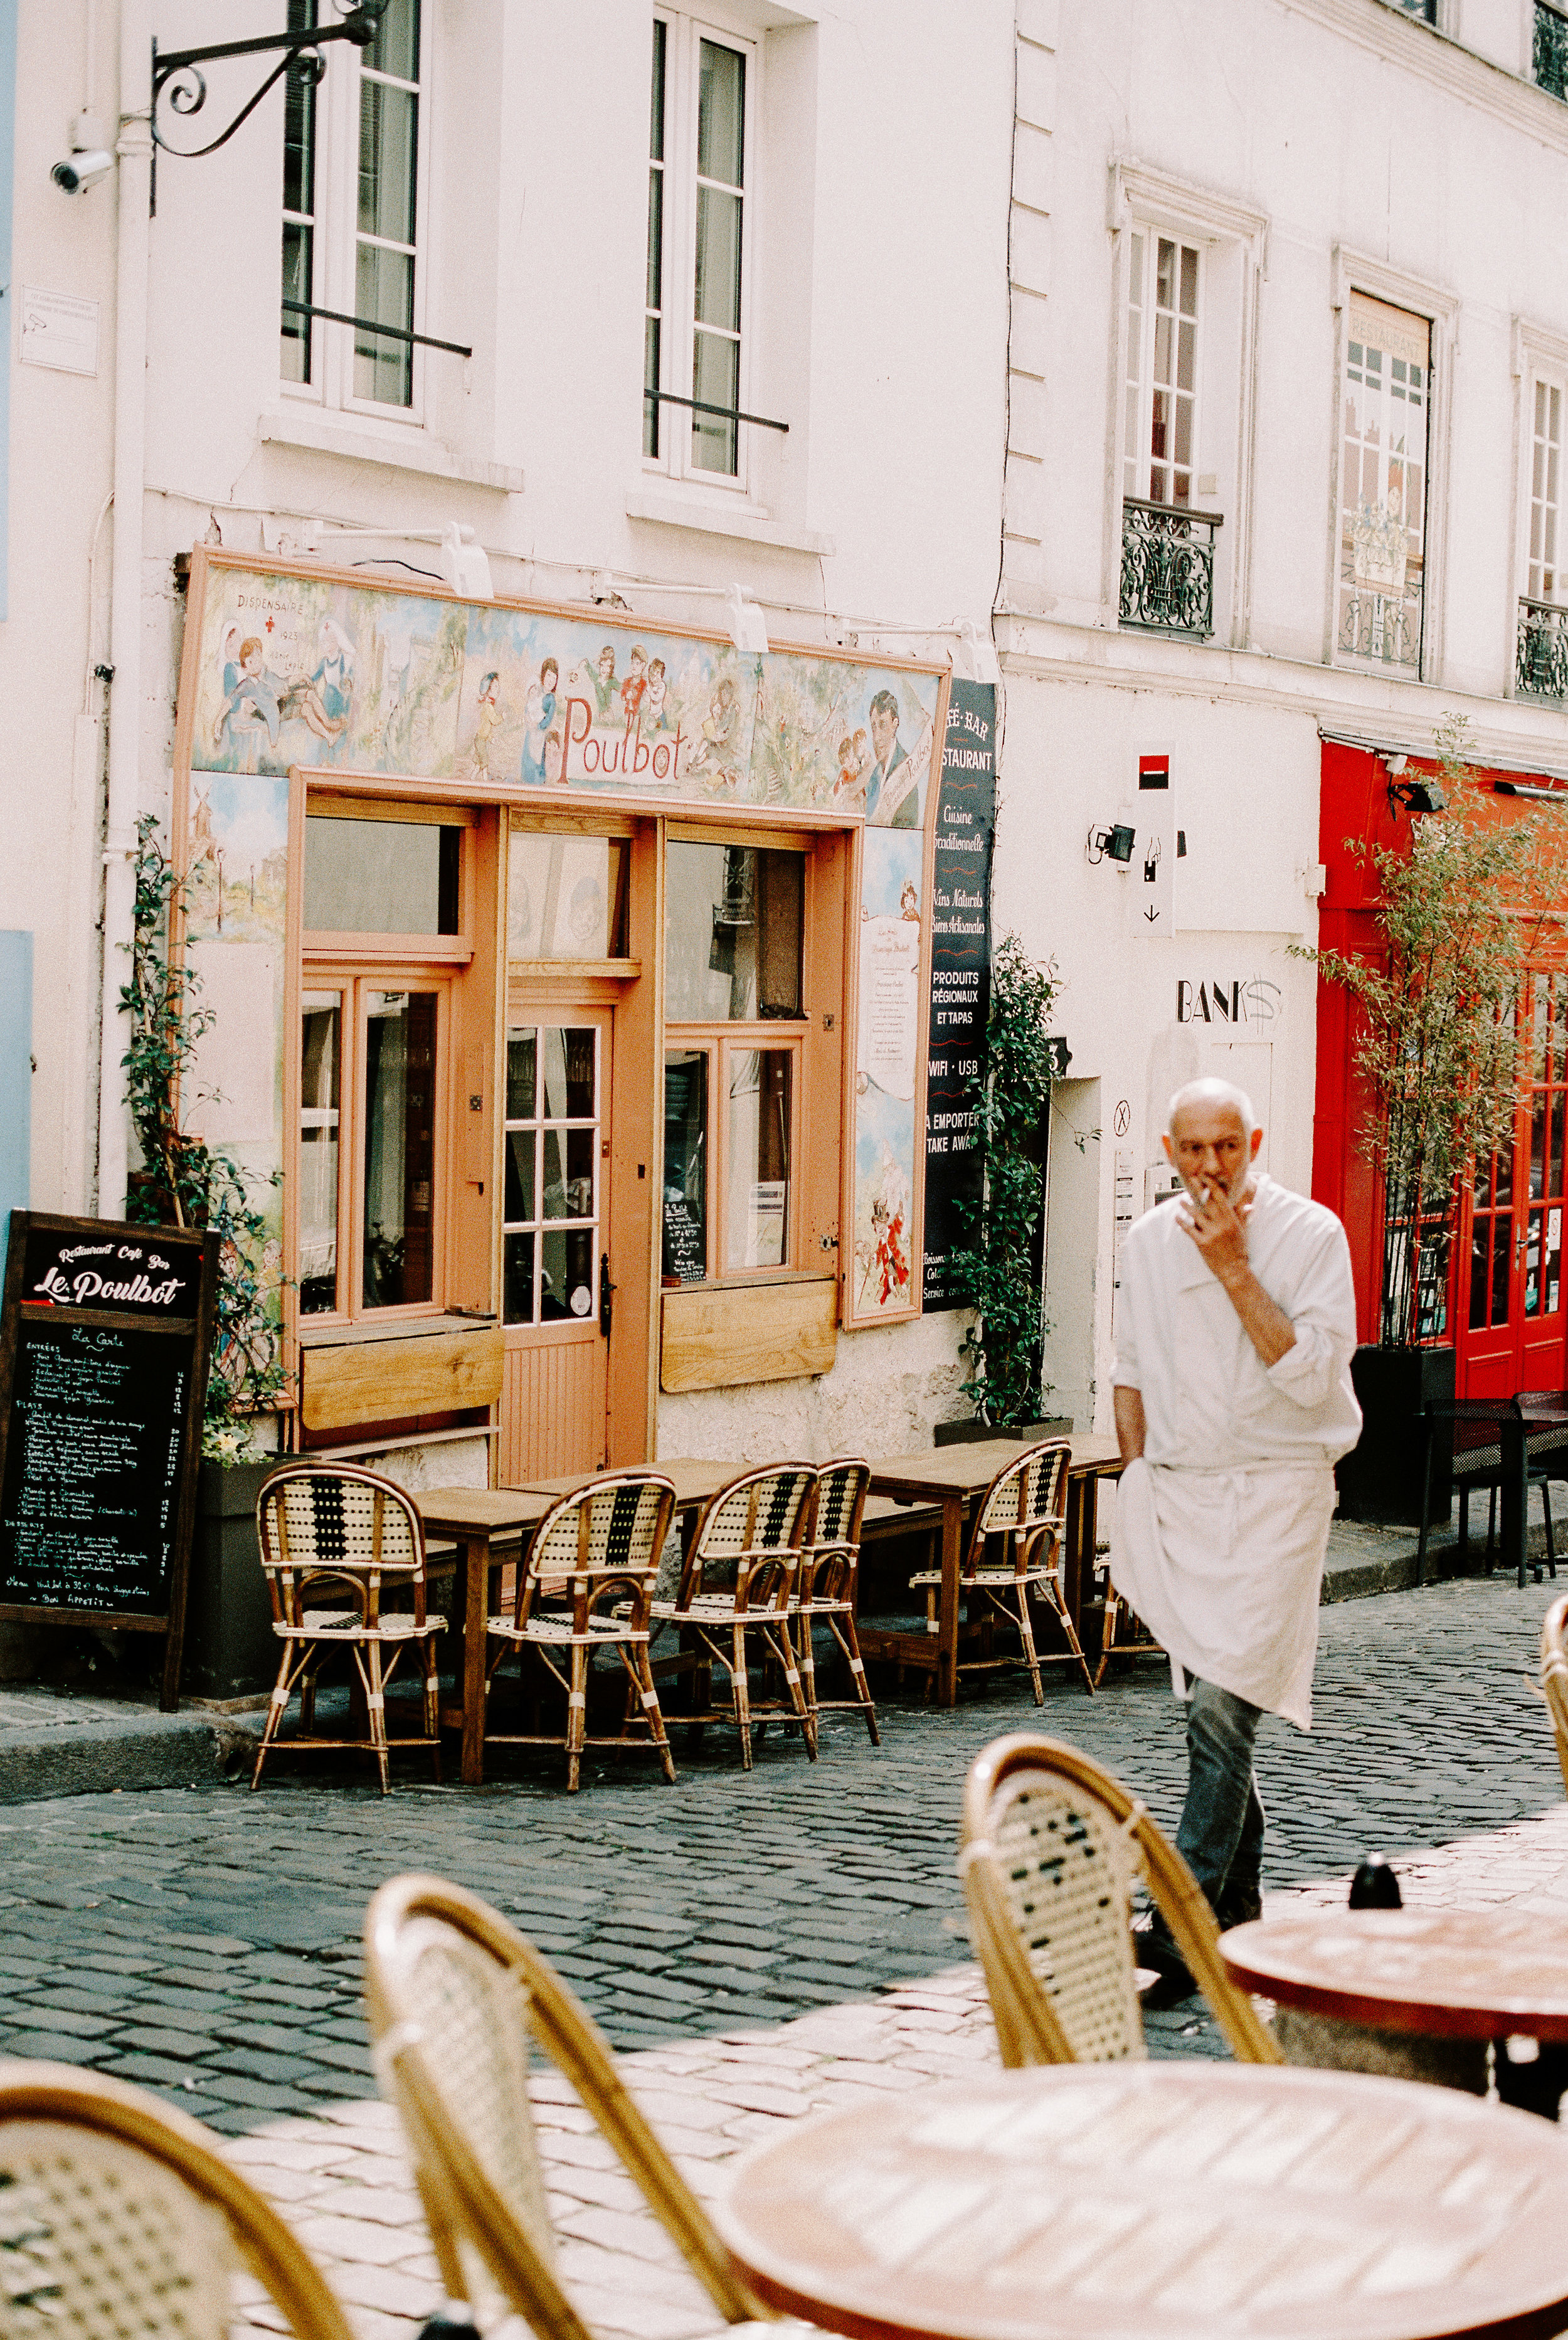 A delightful traditional Parisian restaurant, Poulbot, where we ate twice during our stay. It's tiny inside but absolutely charming and romantic - with the best onion soup I've ever eaten. I'm still dreaming of those meals.